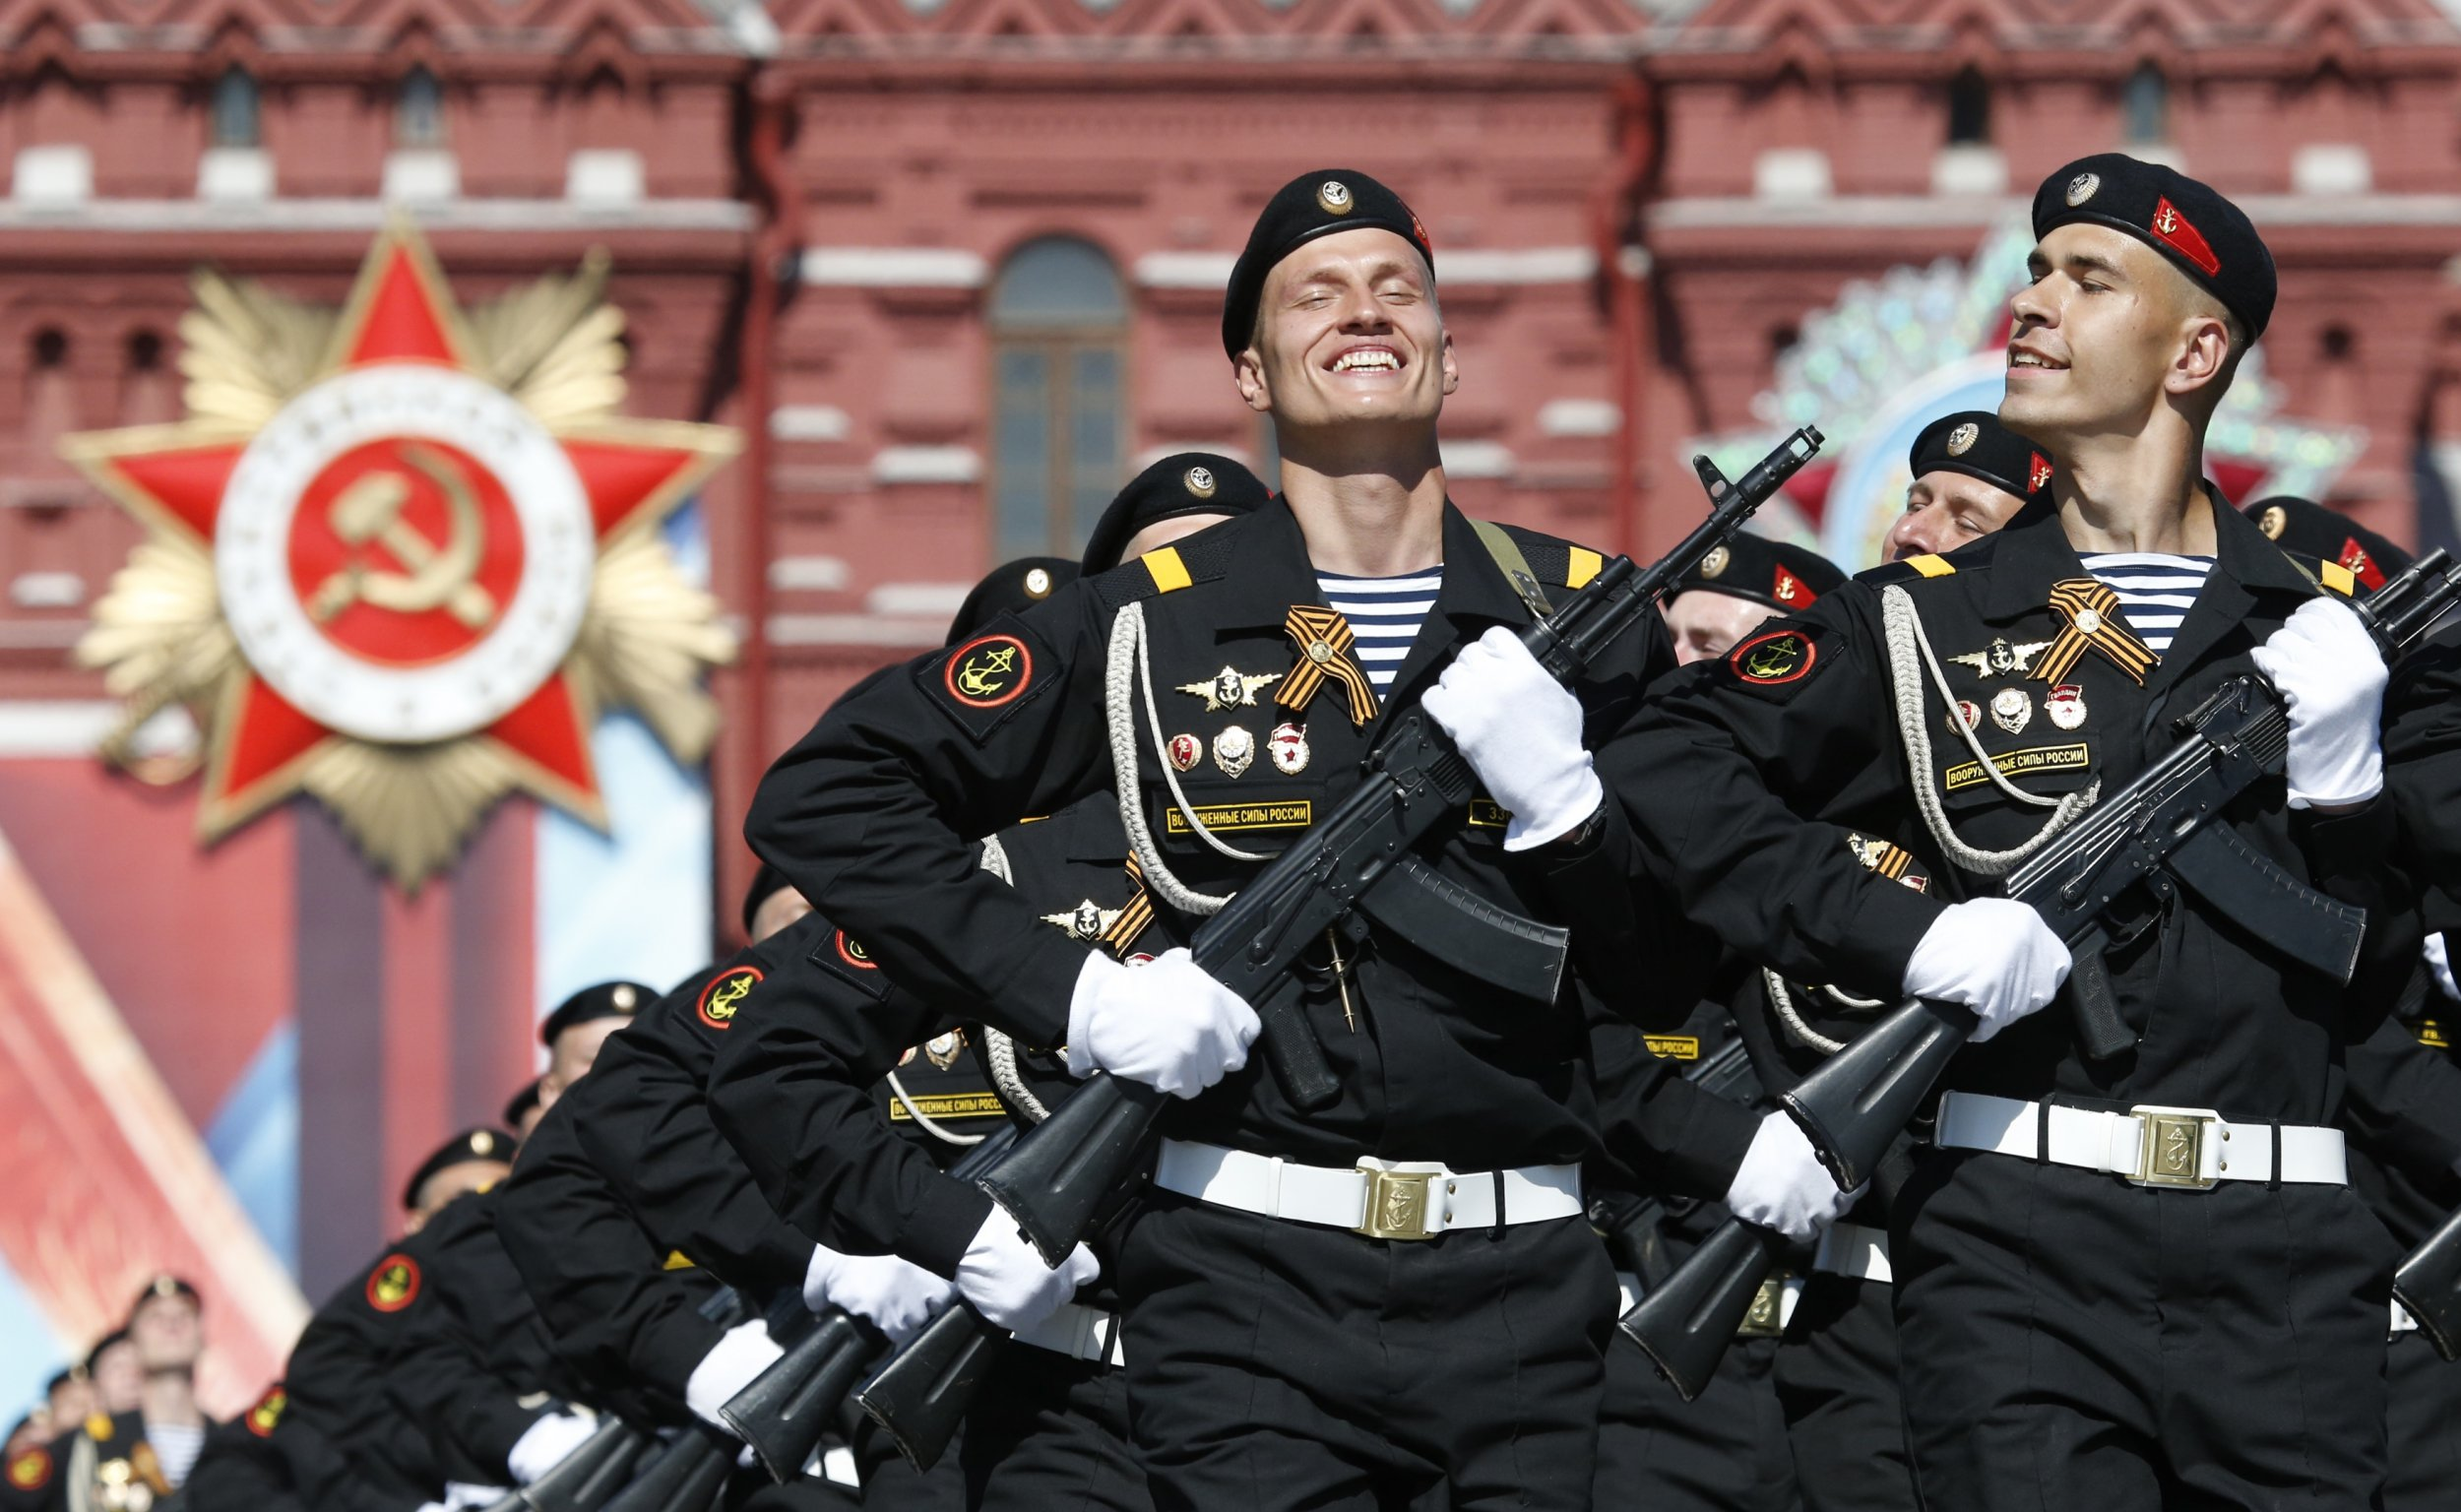 Russian troops march on the Red Square